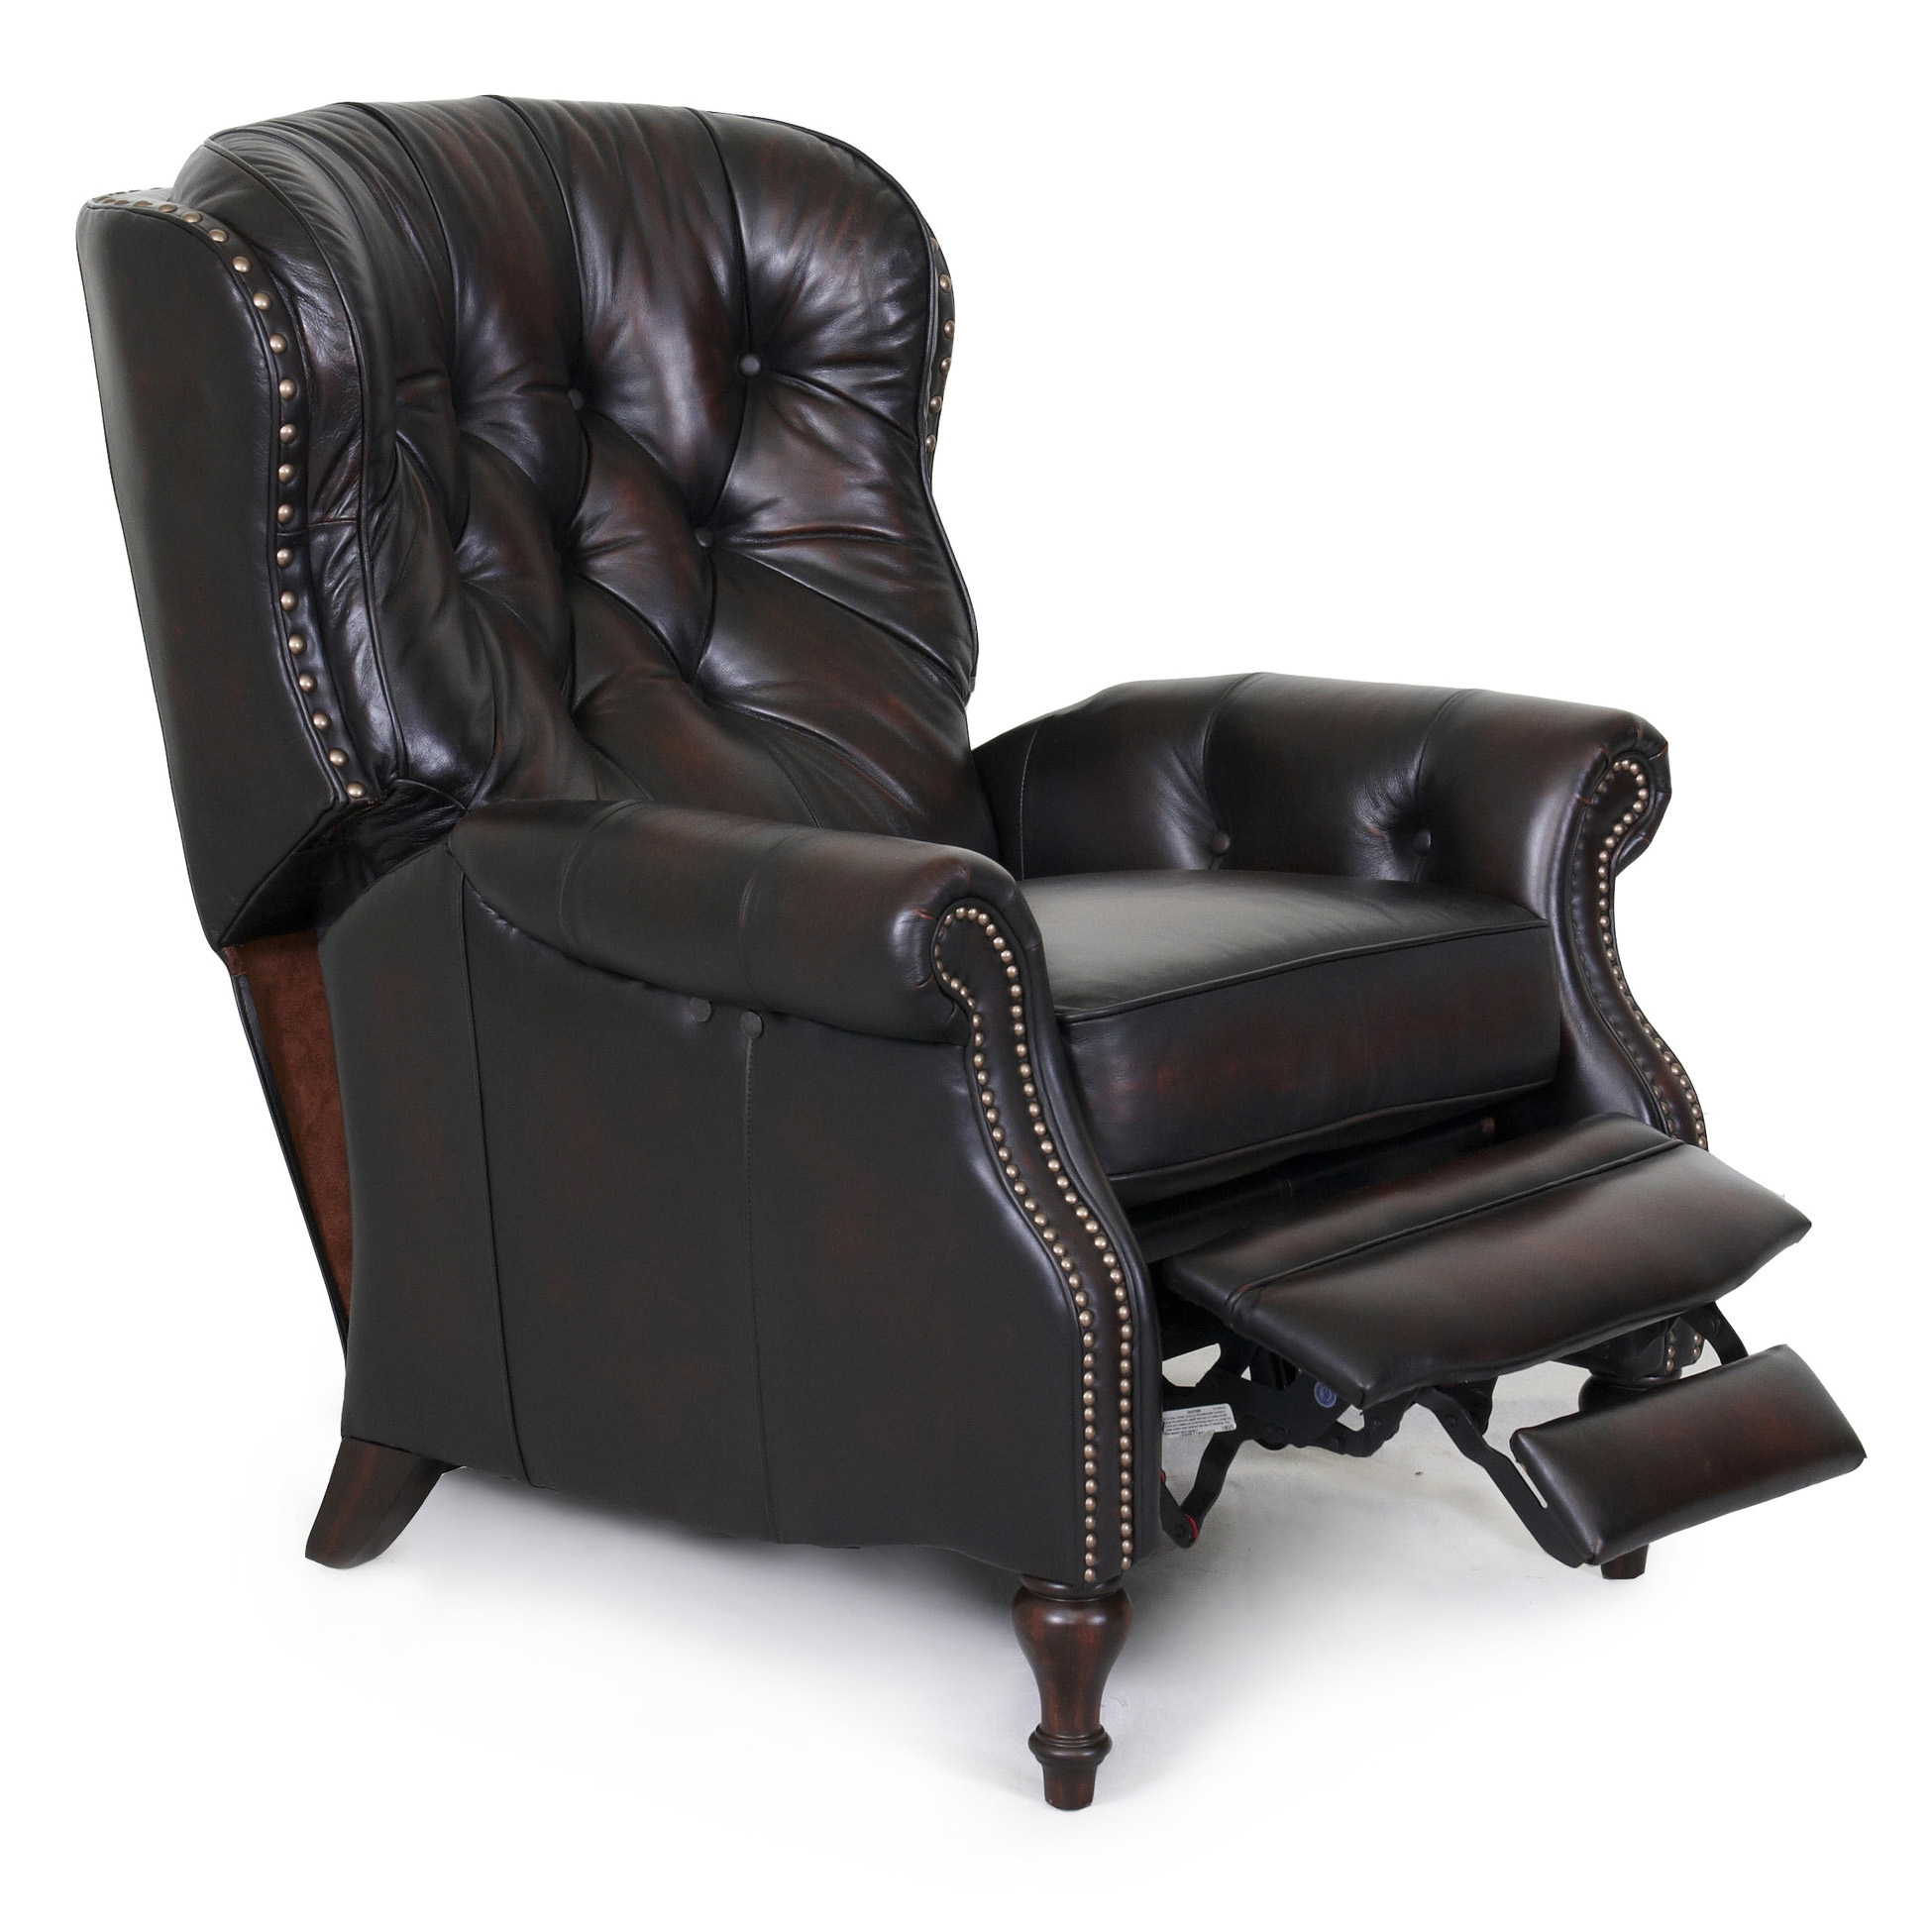 Barcalounger Kendall II Recliner Leather Chair ...  sc 1 st  Vitalityweb.com & Barcalounger Kendall II Recliner Chair - Leather Recliner Chair ... islam-shia.org